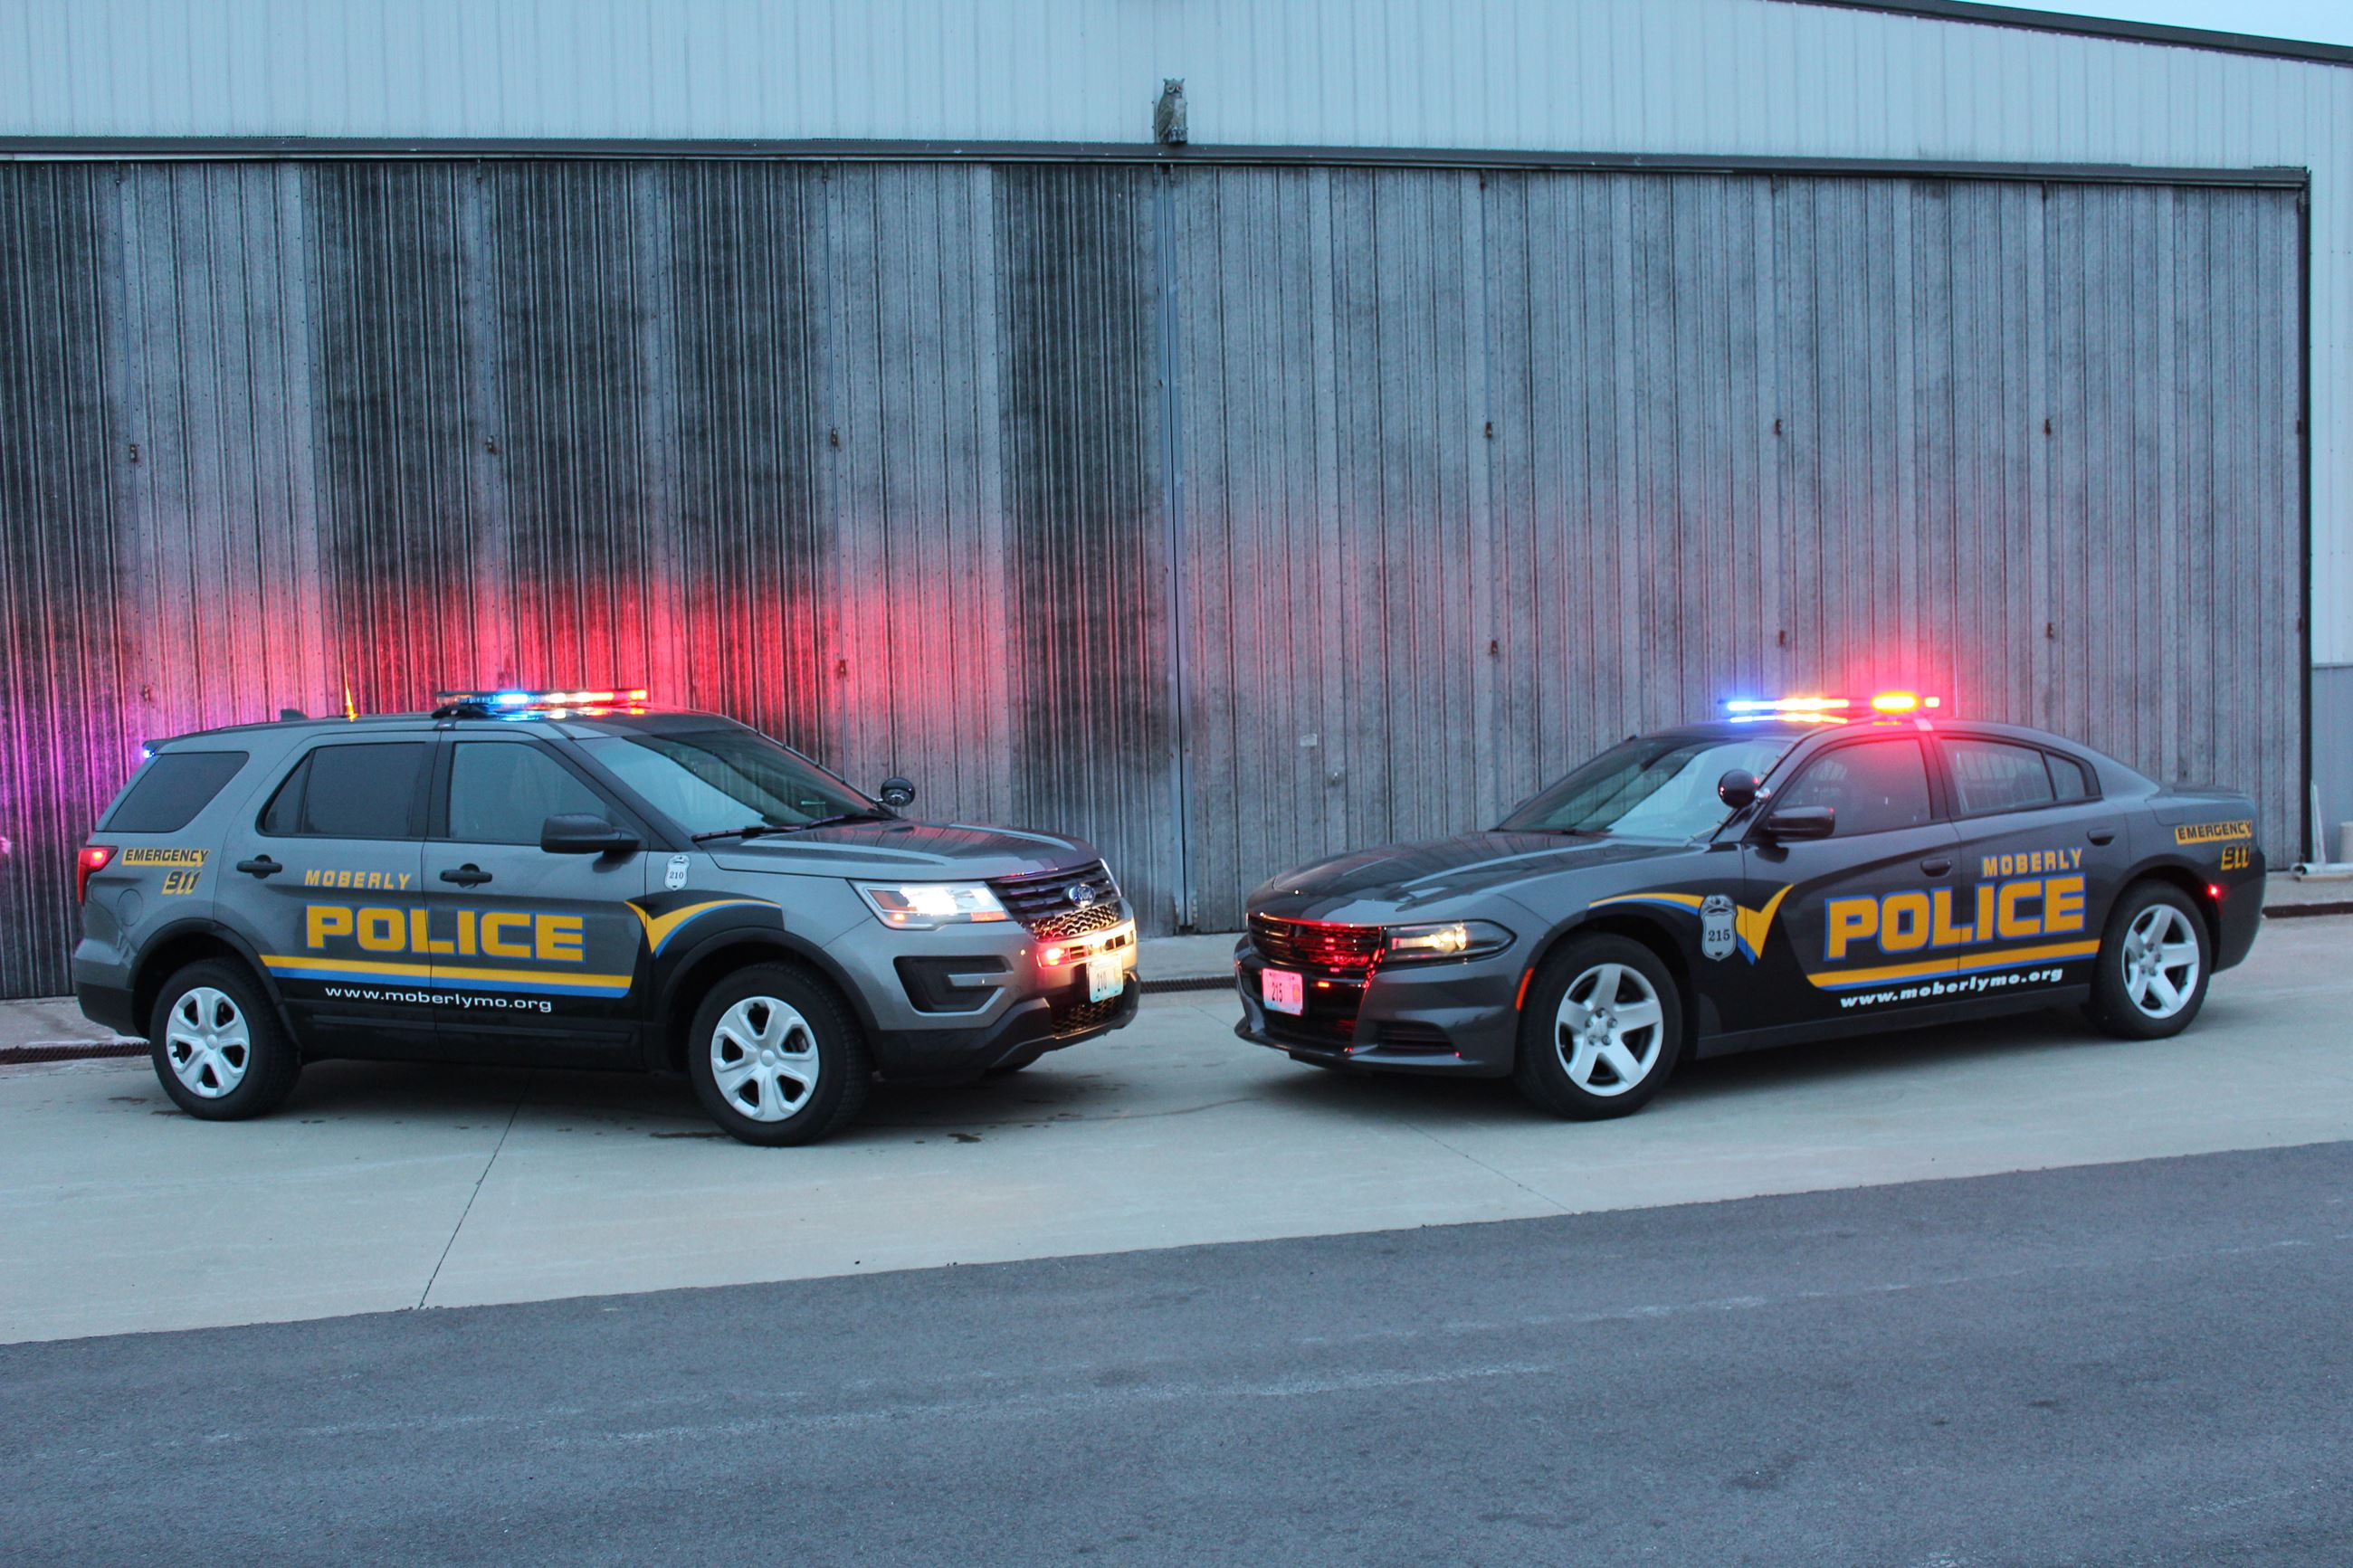 Image of Moberly Patrol Car and SUV facing each other with lights flashing